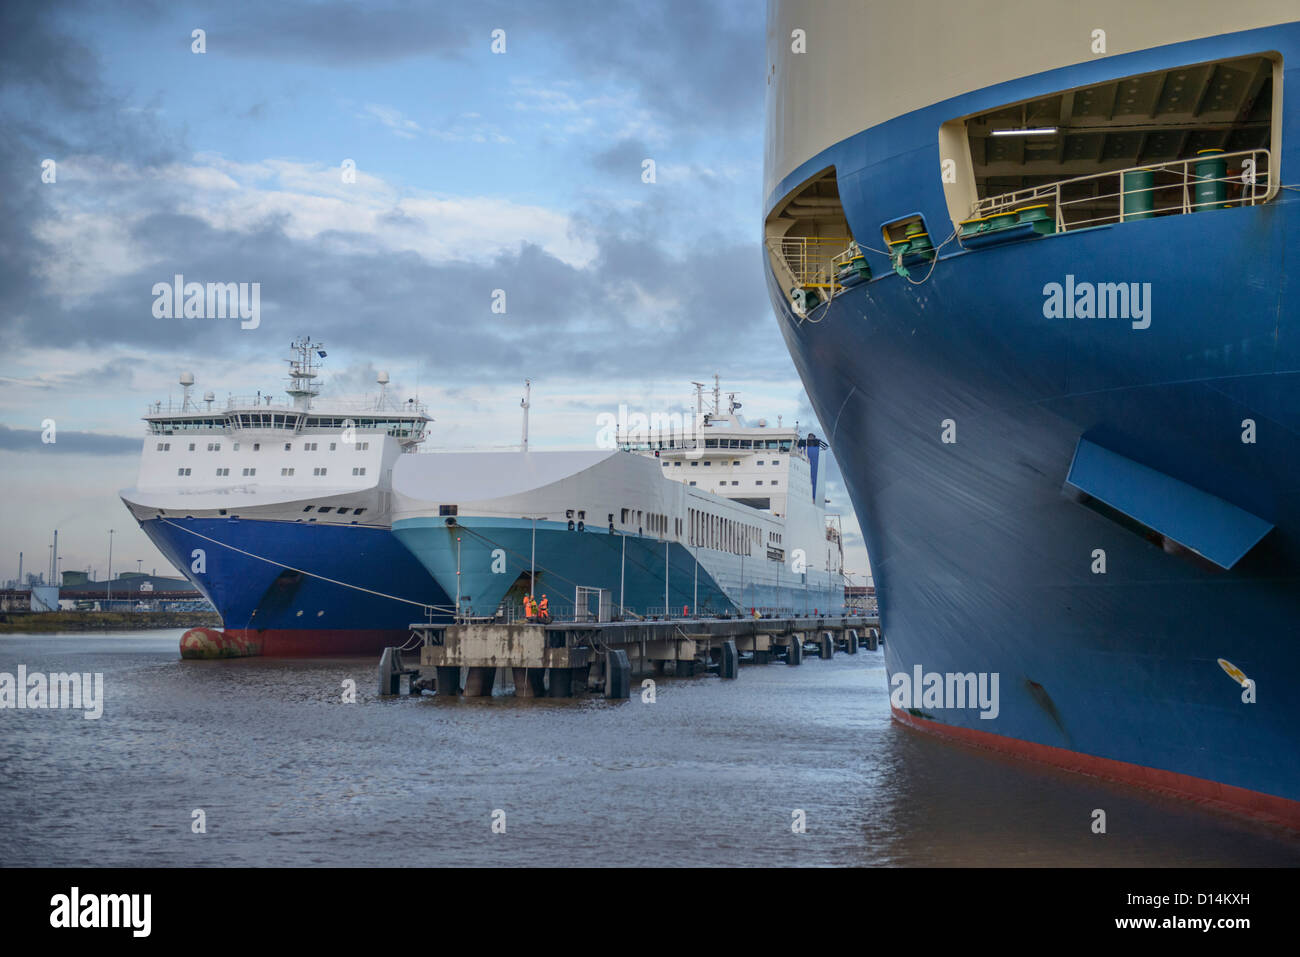 Ships docked in harbor - Stock Image